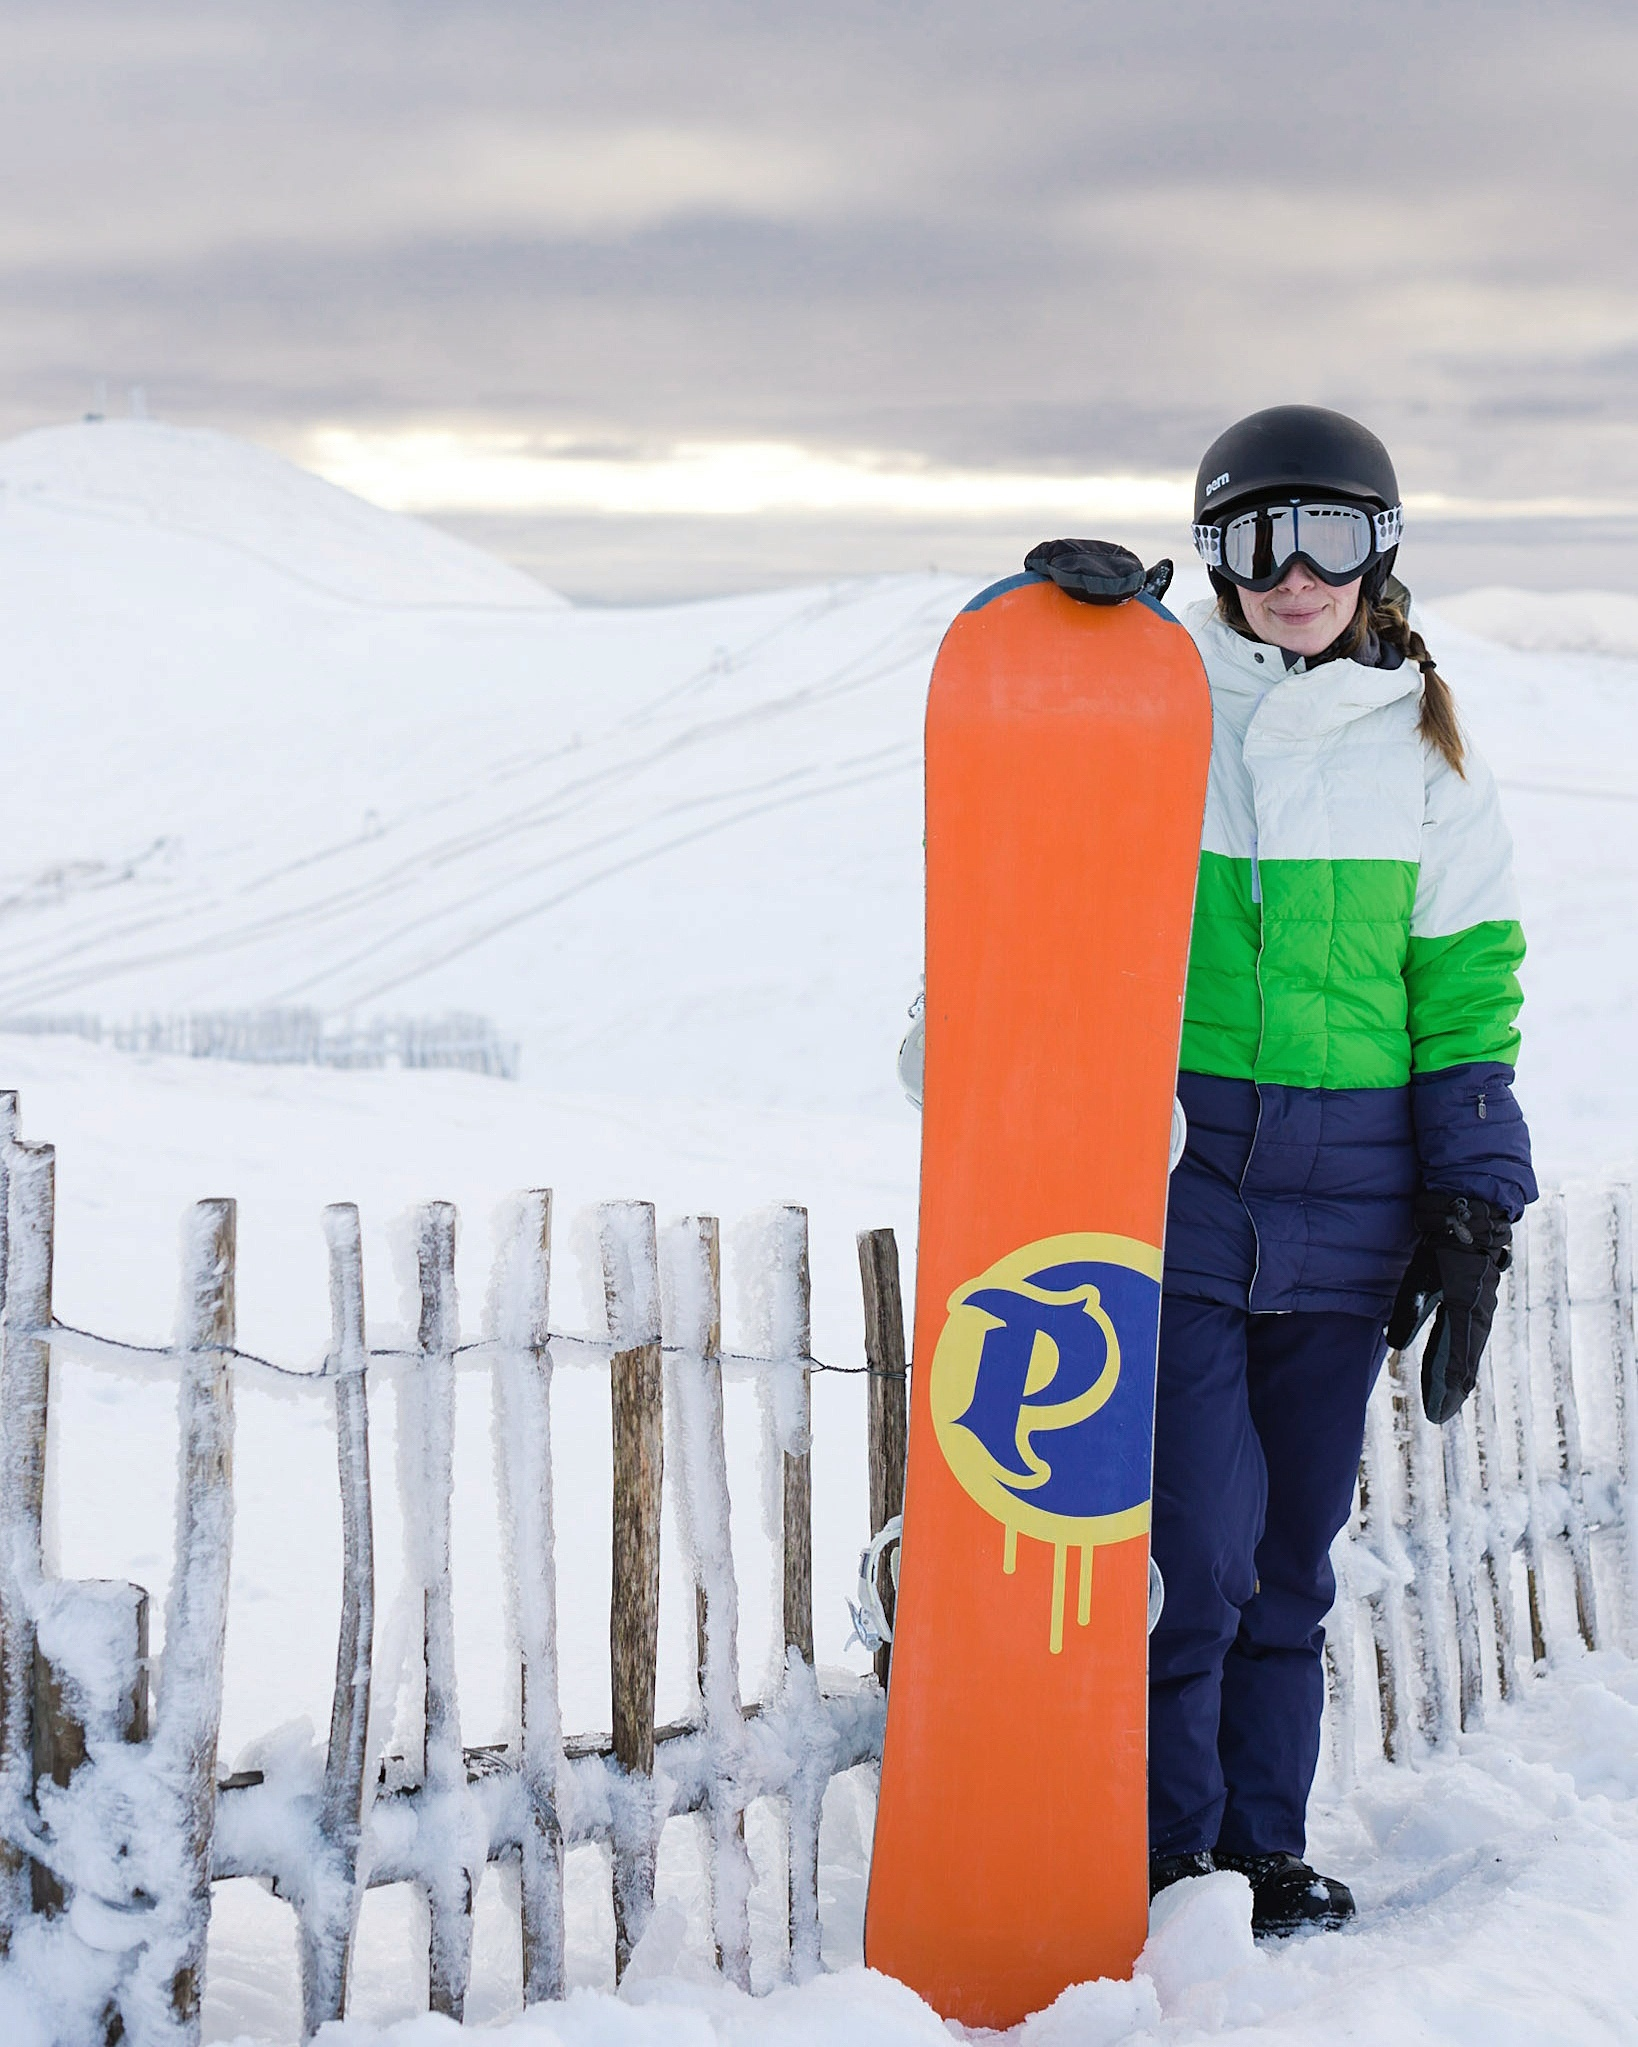 Kate ready to shred the Shee   #365photochallenge   #365portraits    #11of365    #nikondf   #nikon50mm